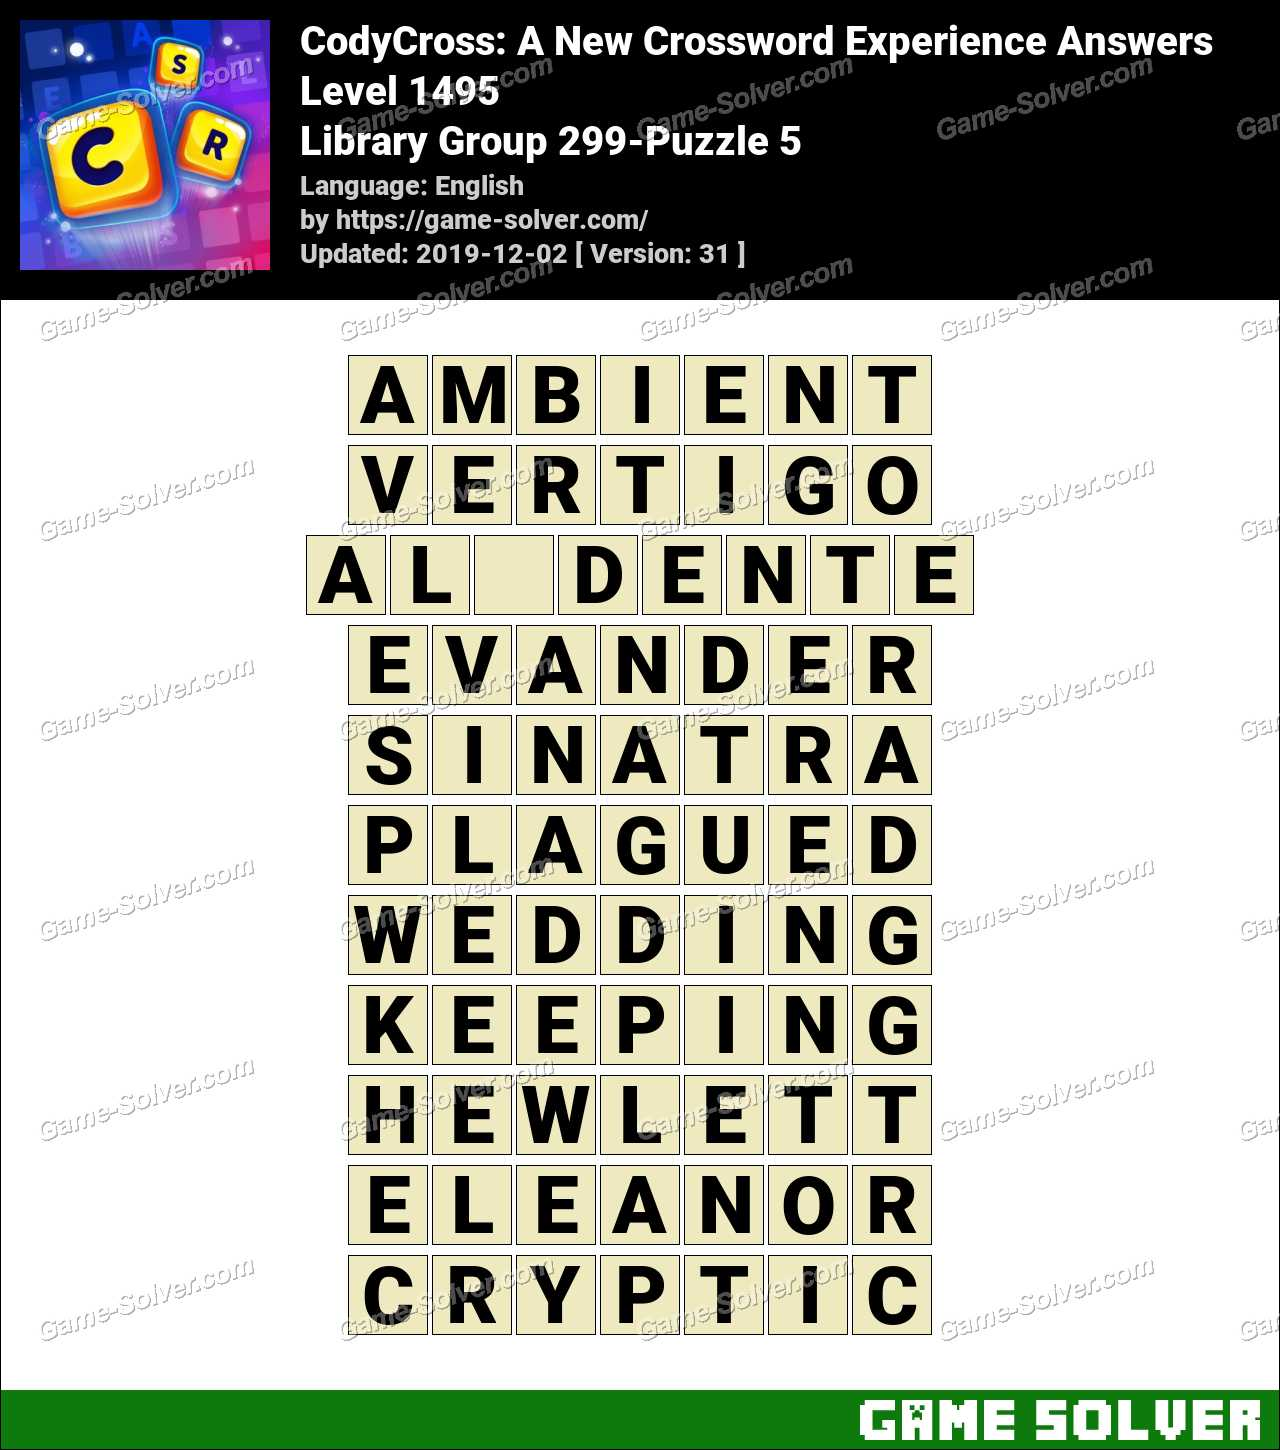 CodyCross Library Group 299-Puzzle 5 Answers